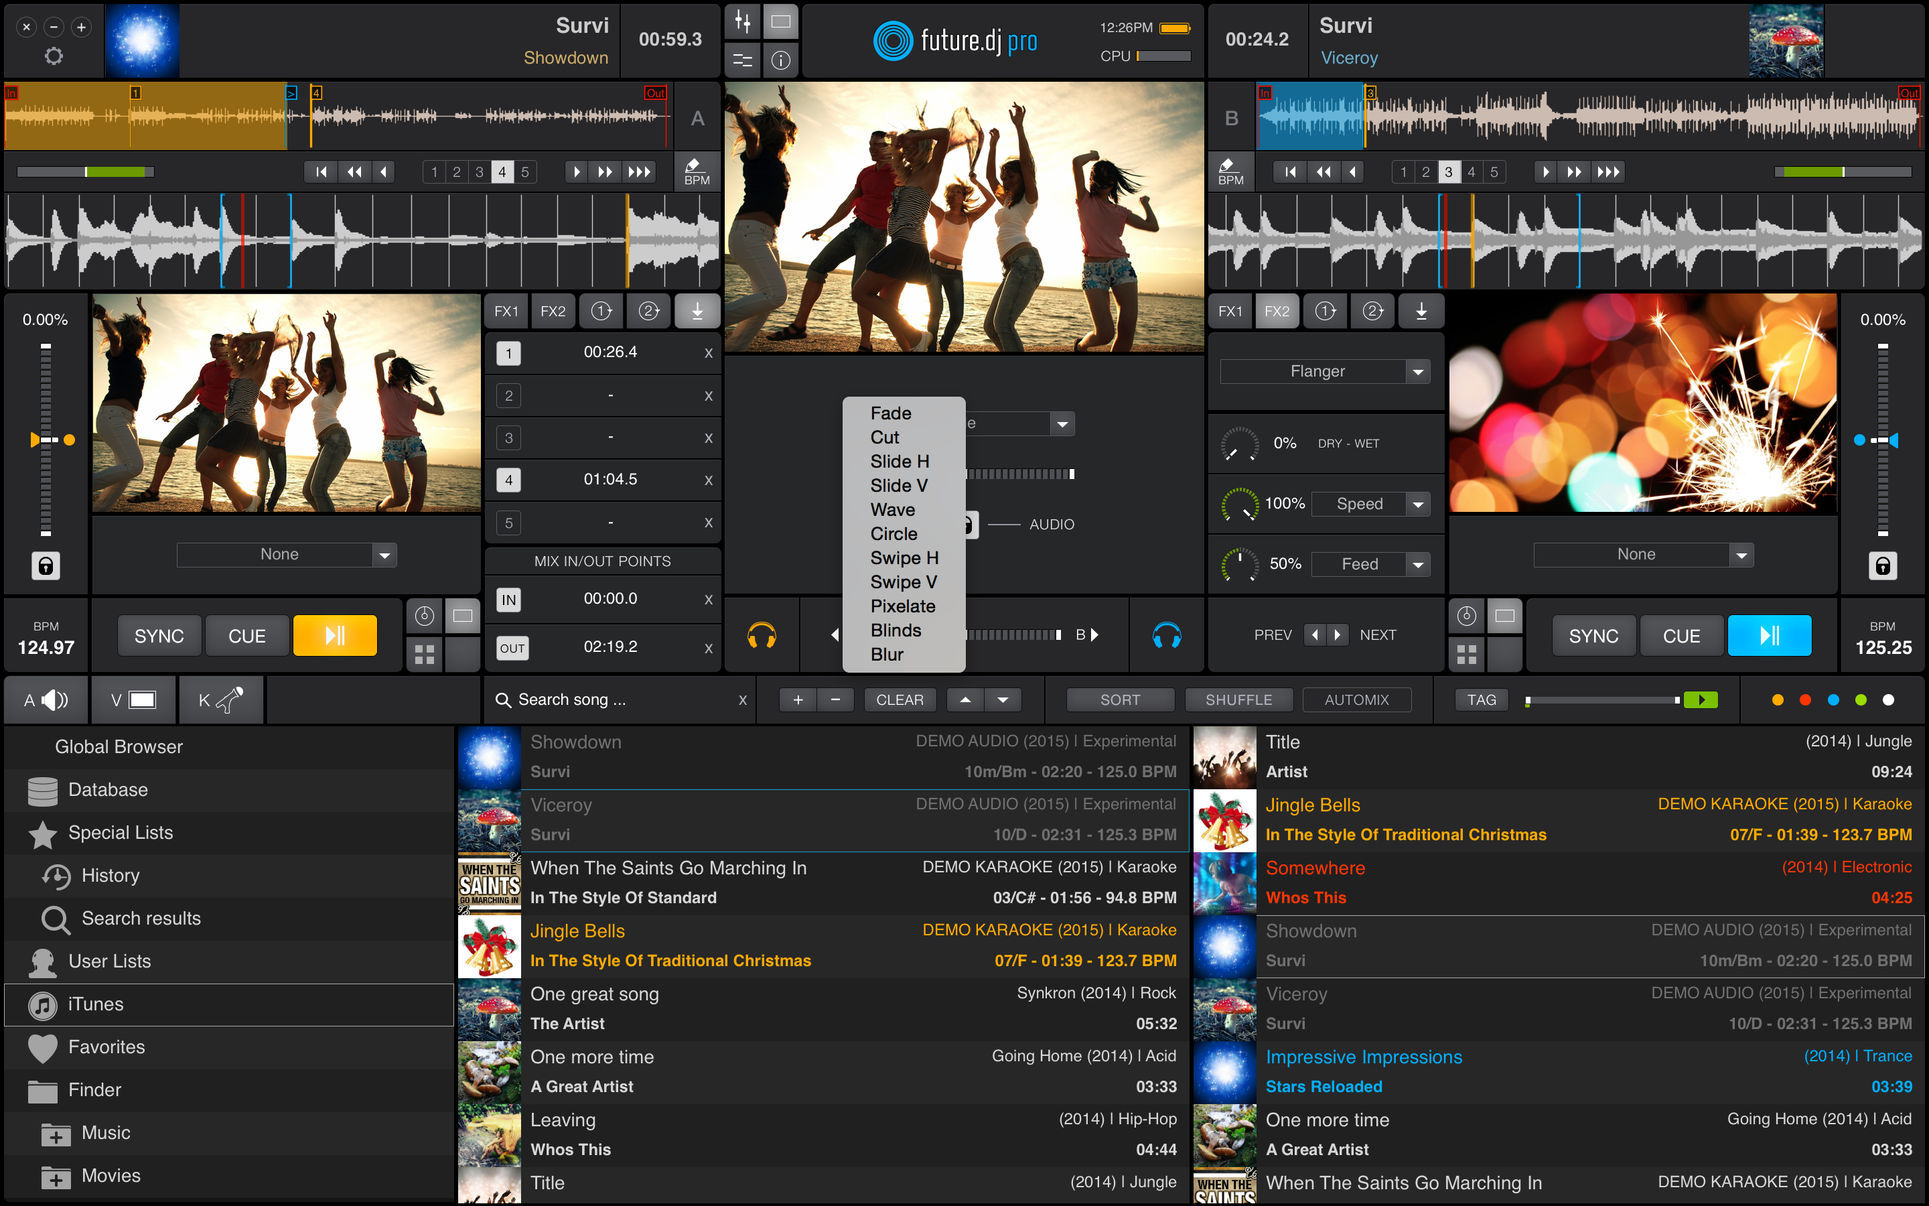 future dj pro for Mac | MacUpdate